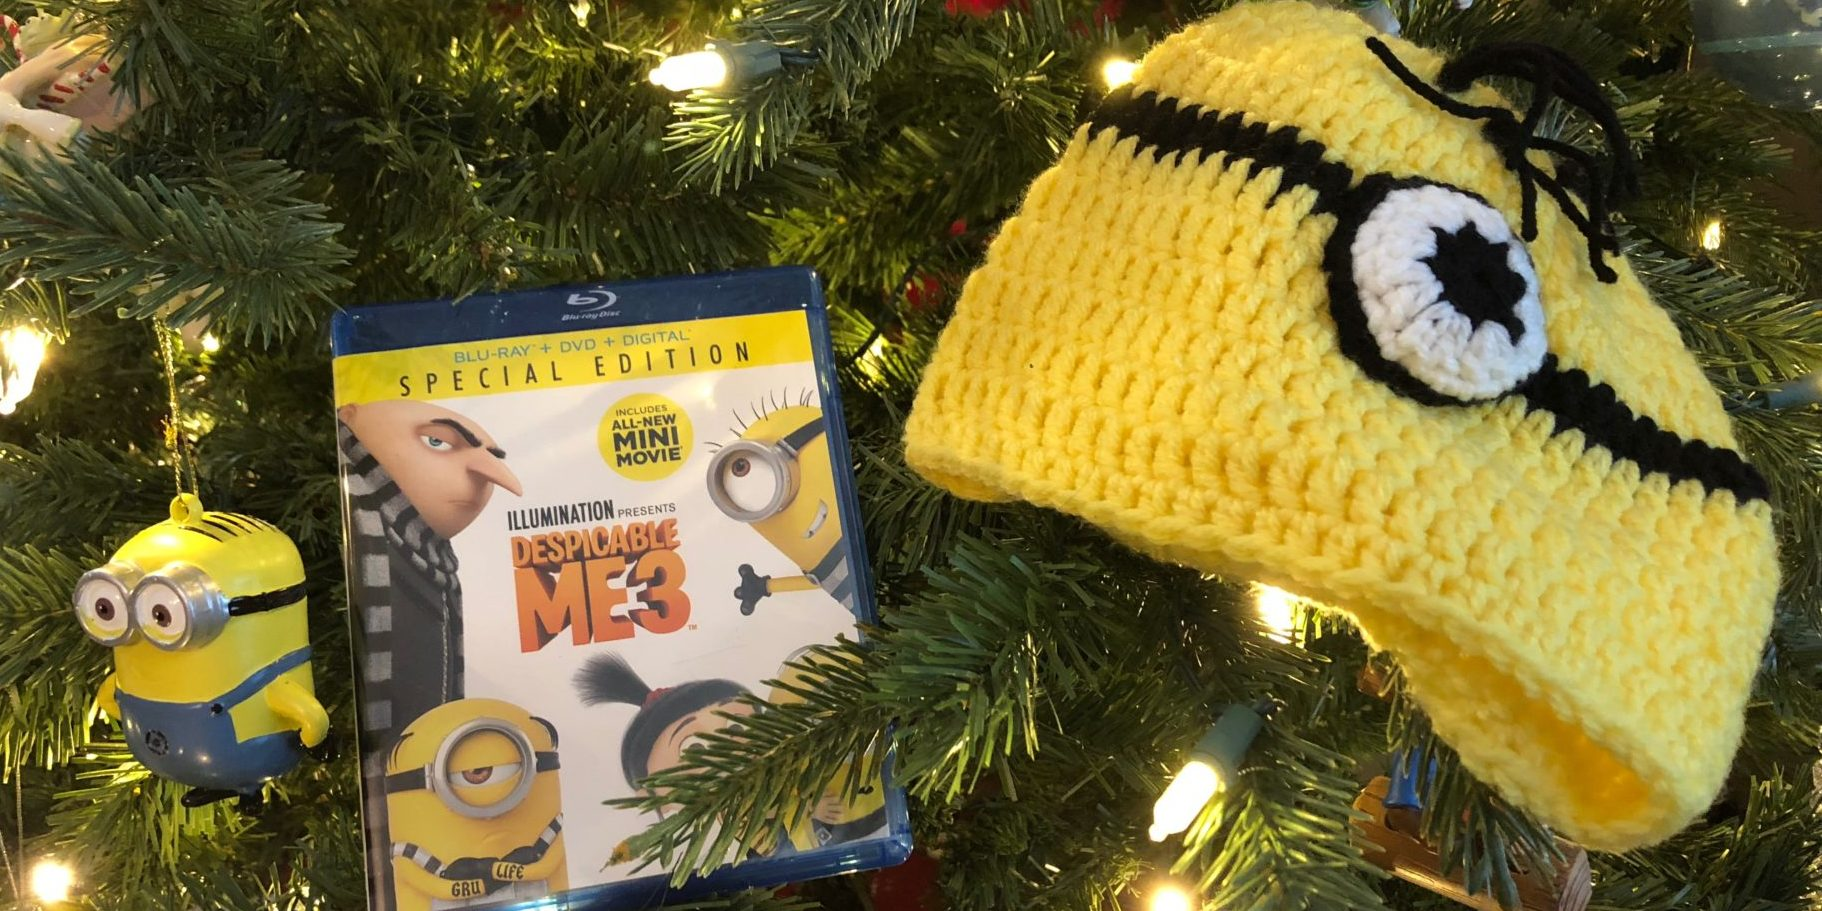 All I want for Christmas is Despicable Me 3  Image: Dakster Sullivan